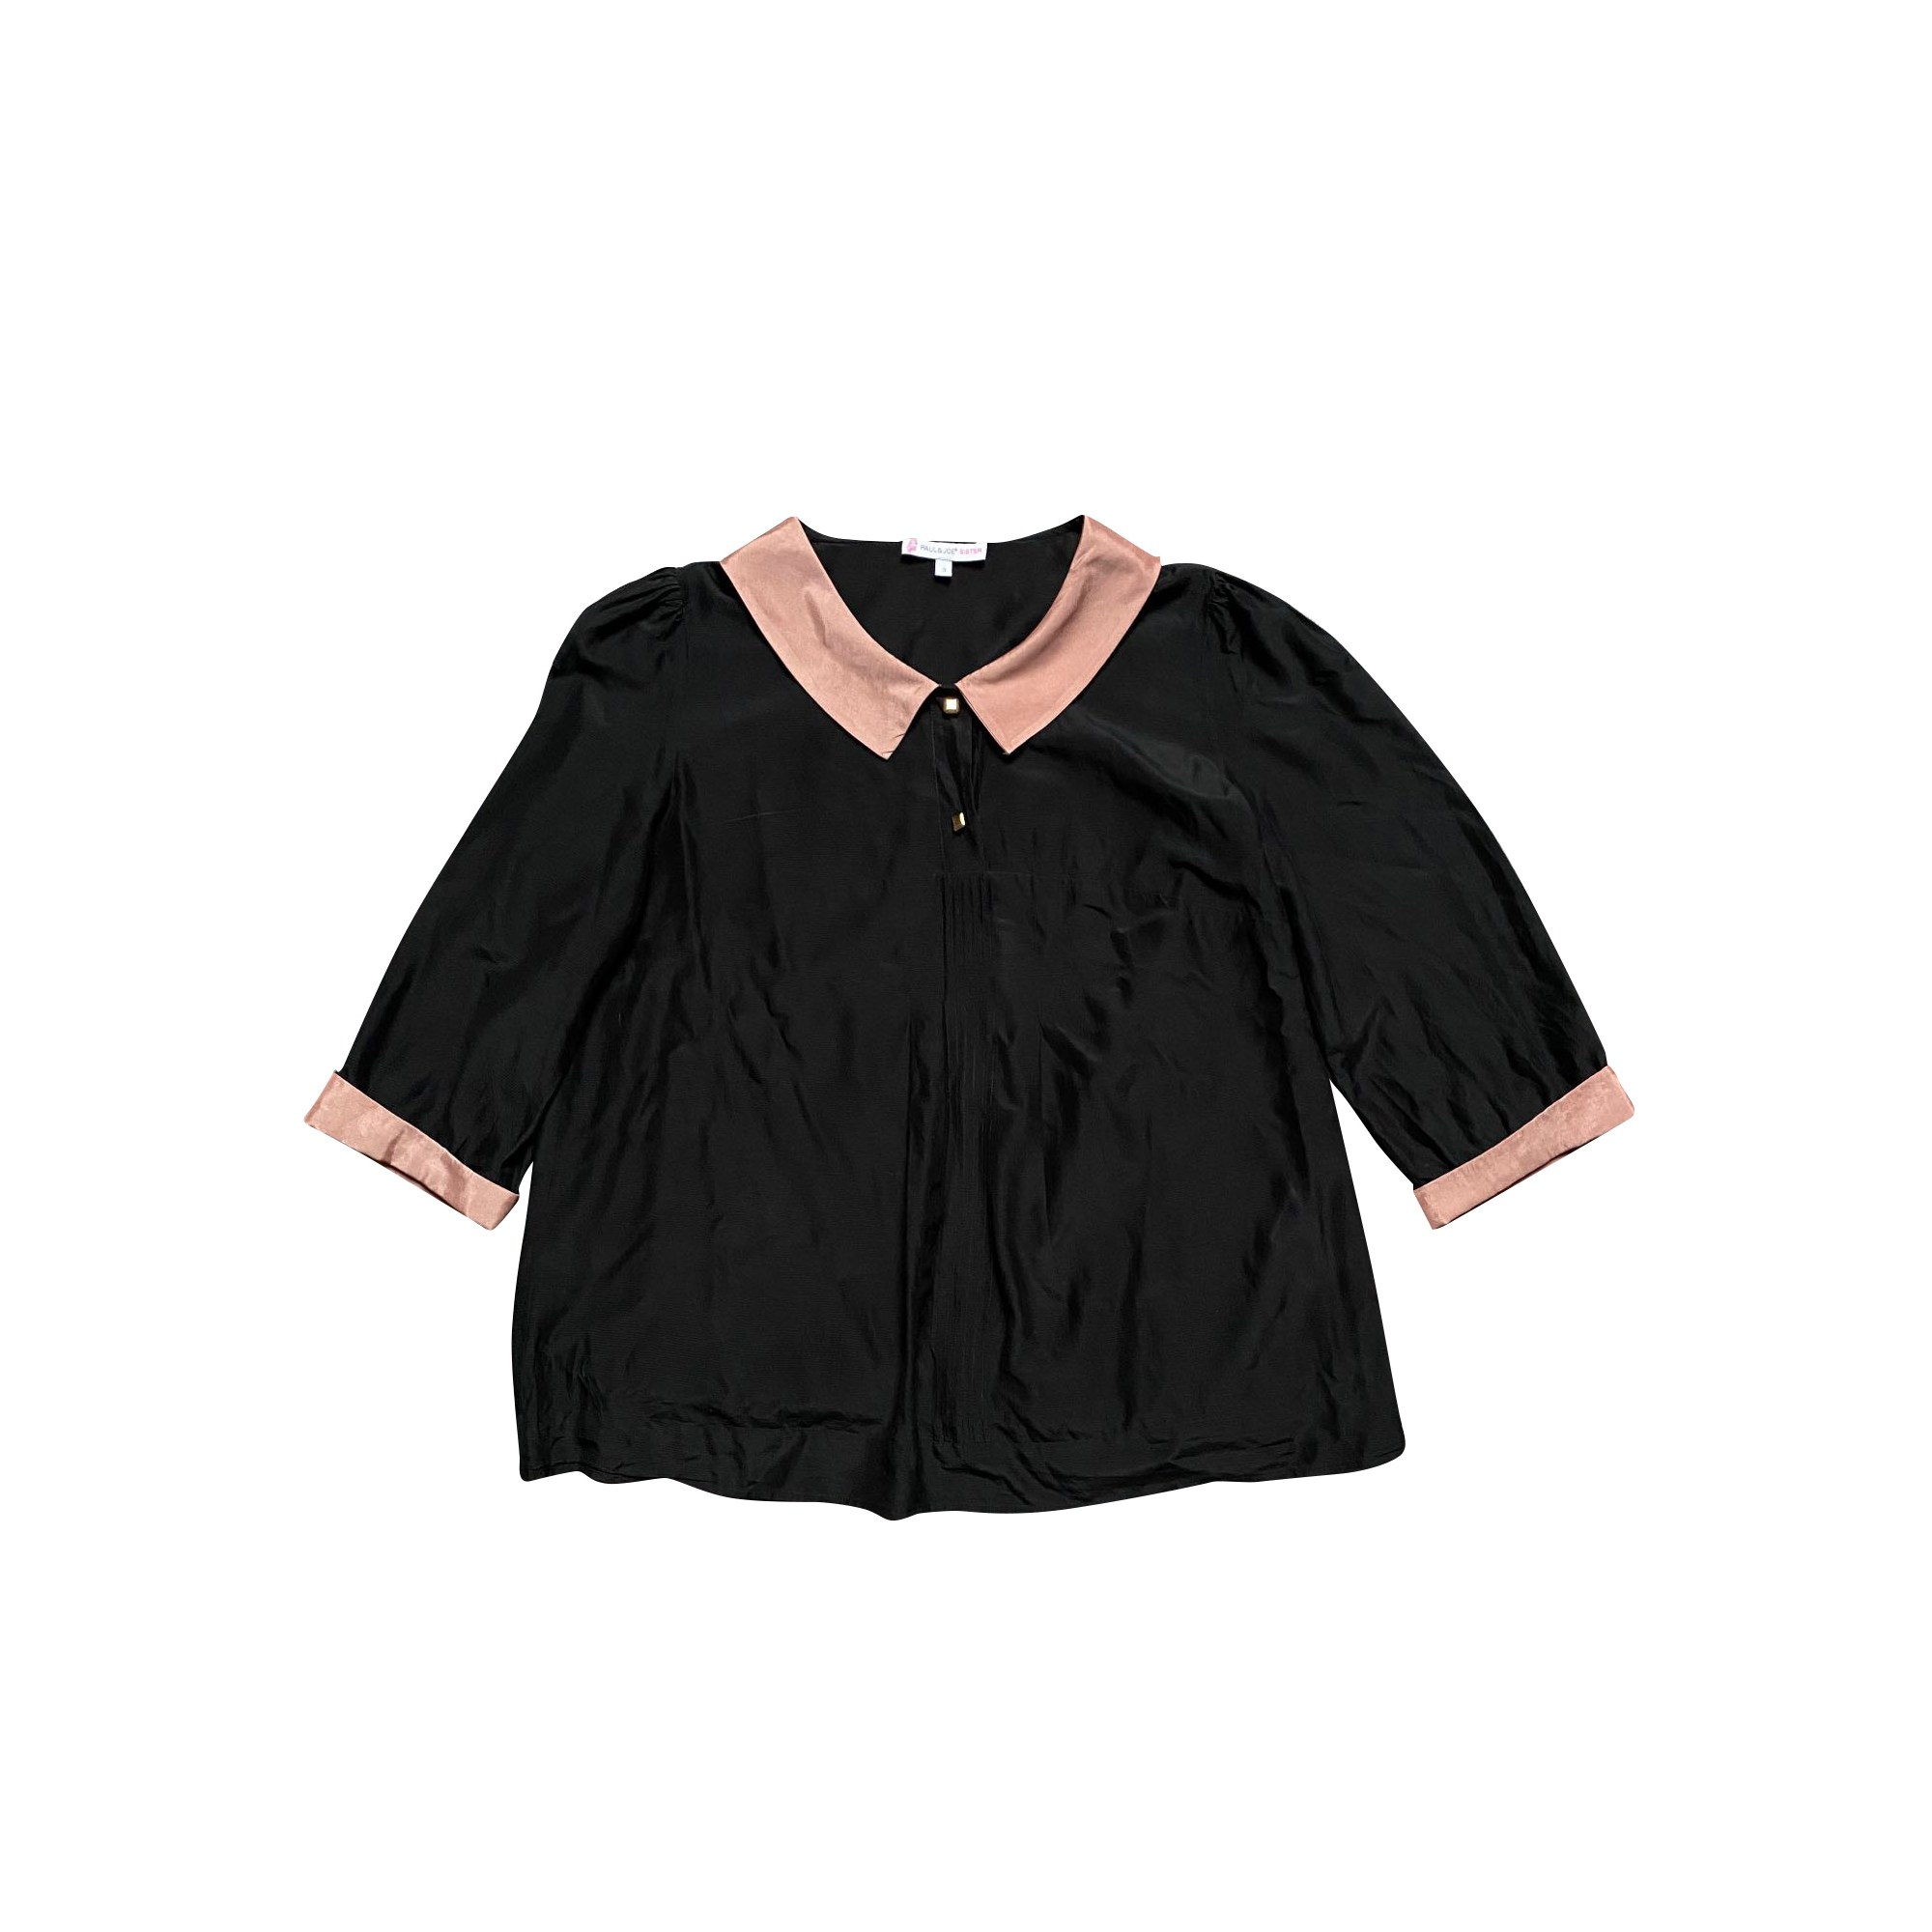 Blouse PAUL & JOE SISTER Noir